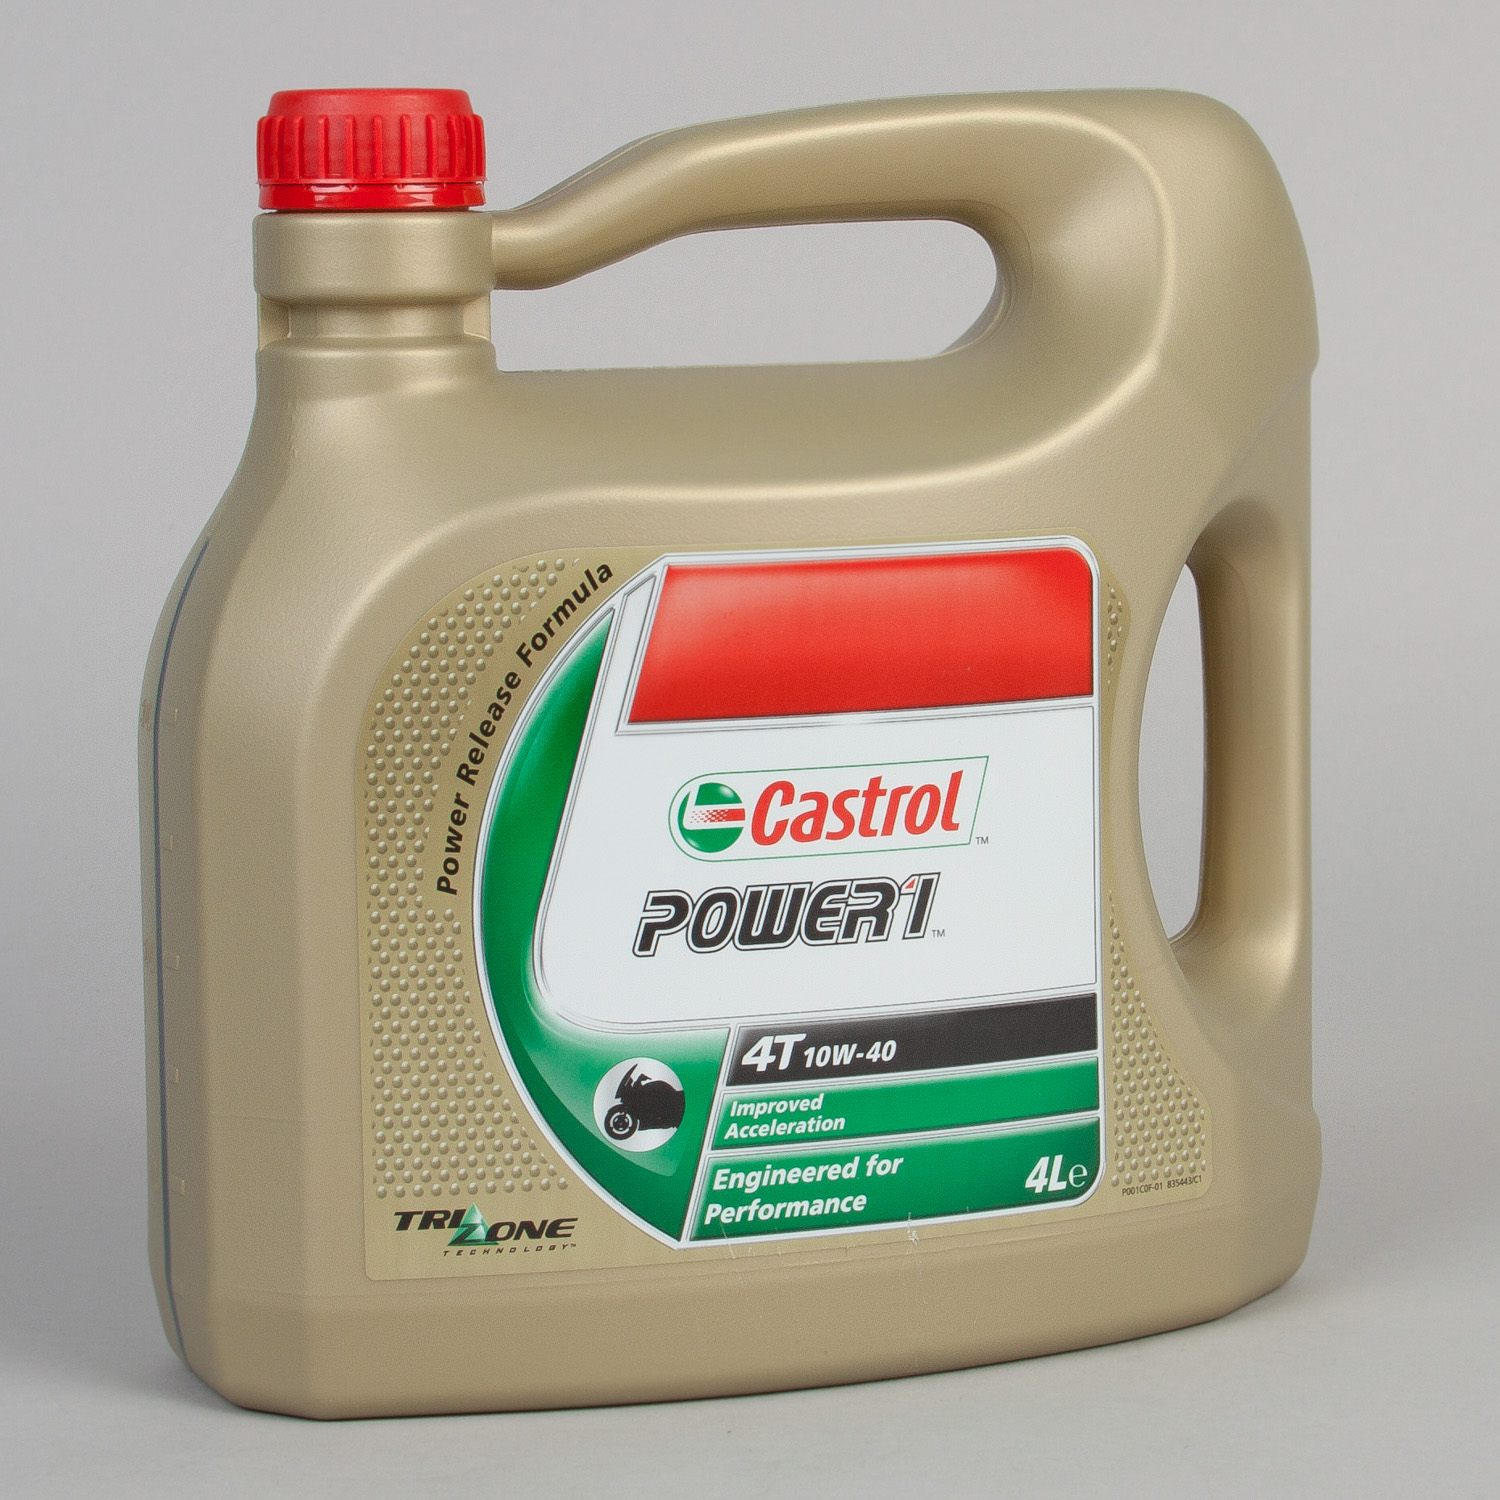 Splitter nya Motorolja Delsyntet Power 1 4L Castrol - Motoaction NU-16